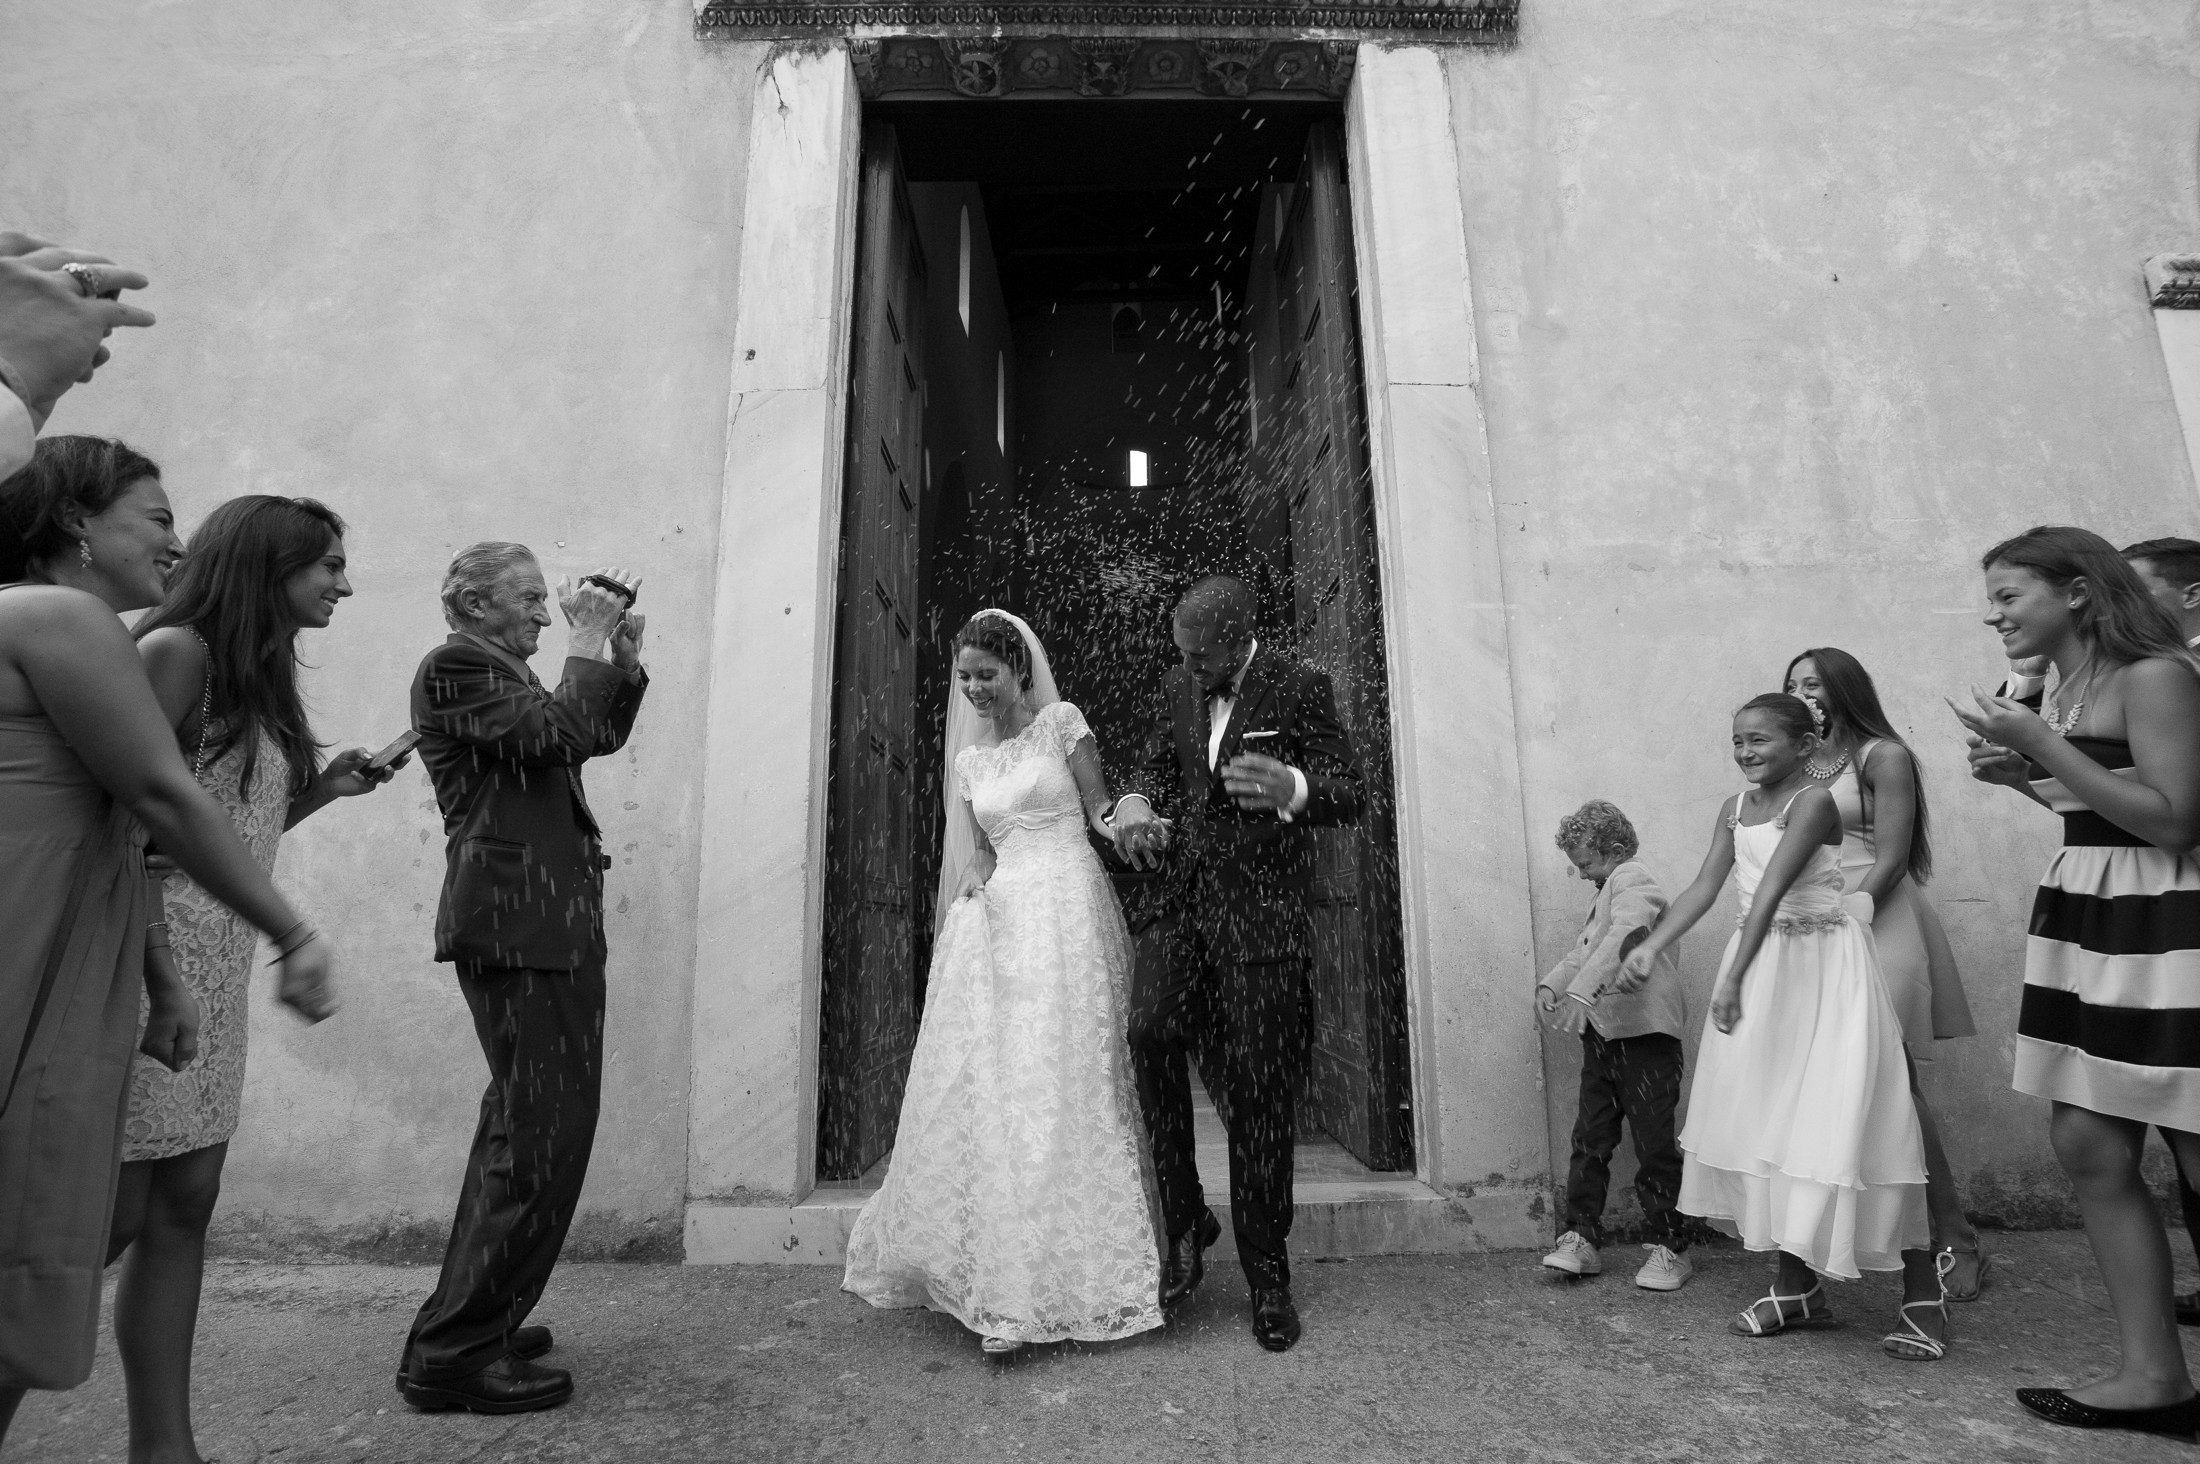 bride and groom leaving the church while guests throw rise